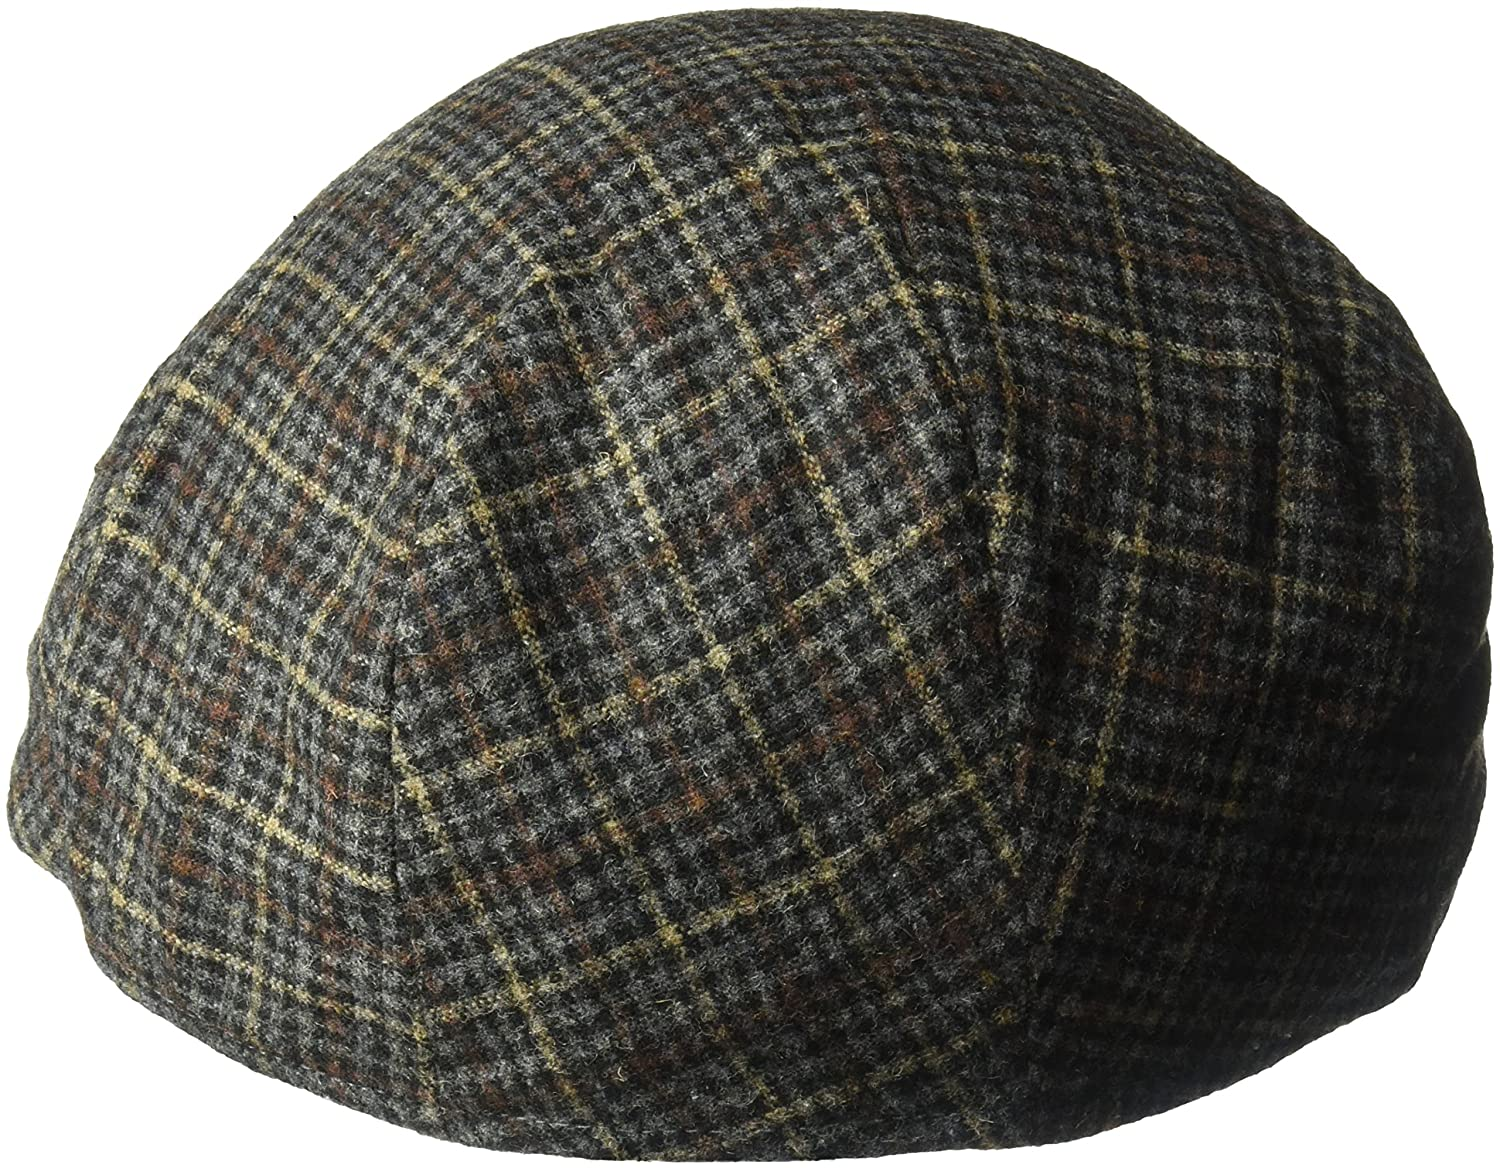 4702af8523b2a Country Gentleman Men s British Classic Patterned Flat Ivy Cap at Amazon  Men s Clothing store